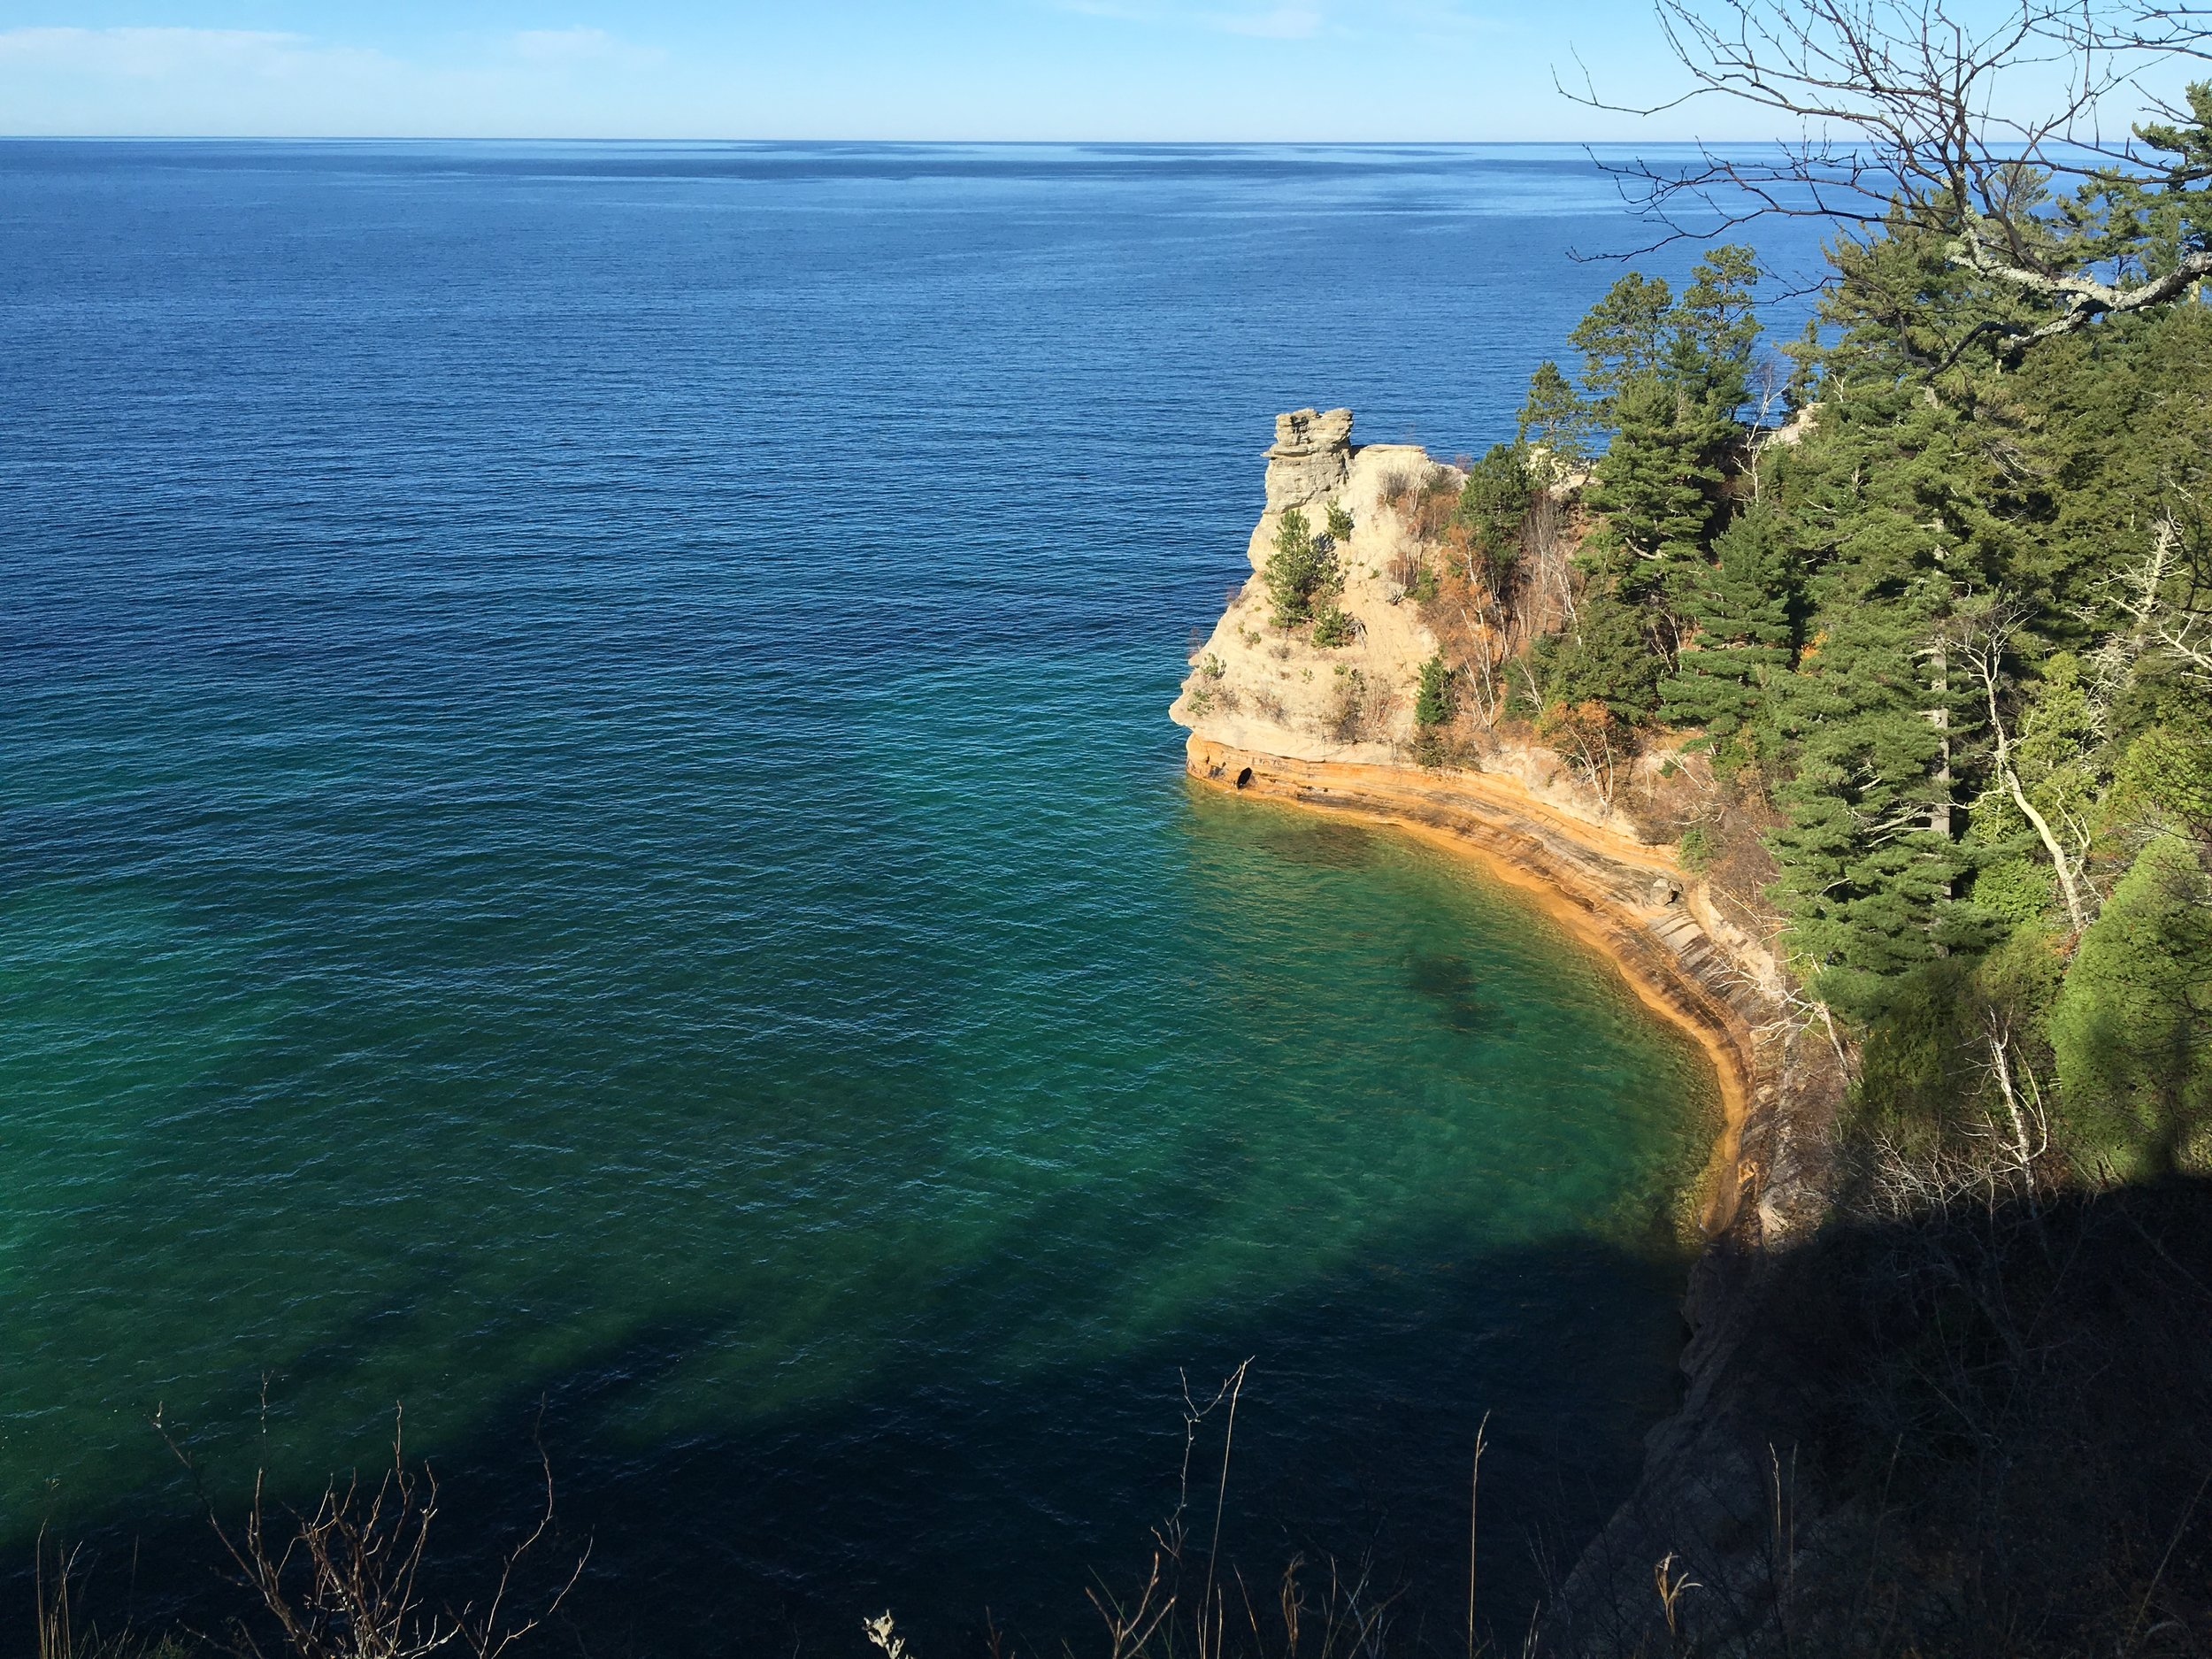 Pictured Rocks Lakeshore. Photo Courtesy of Connor McNeely